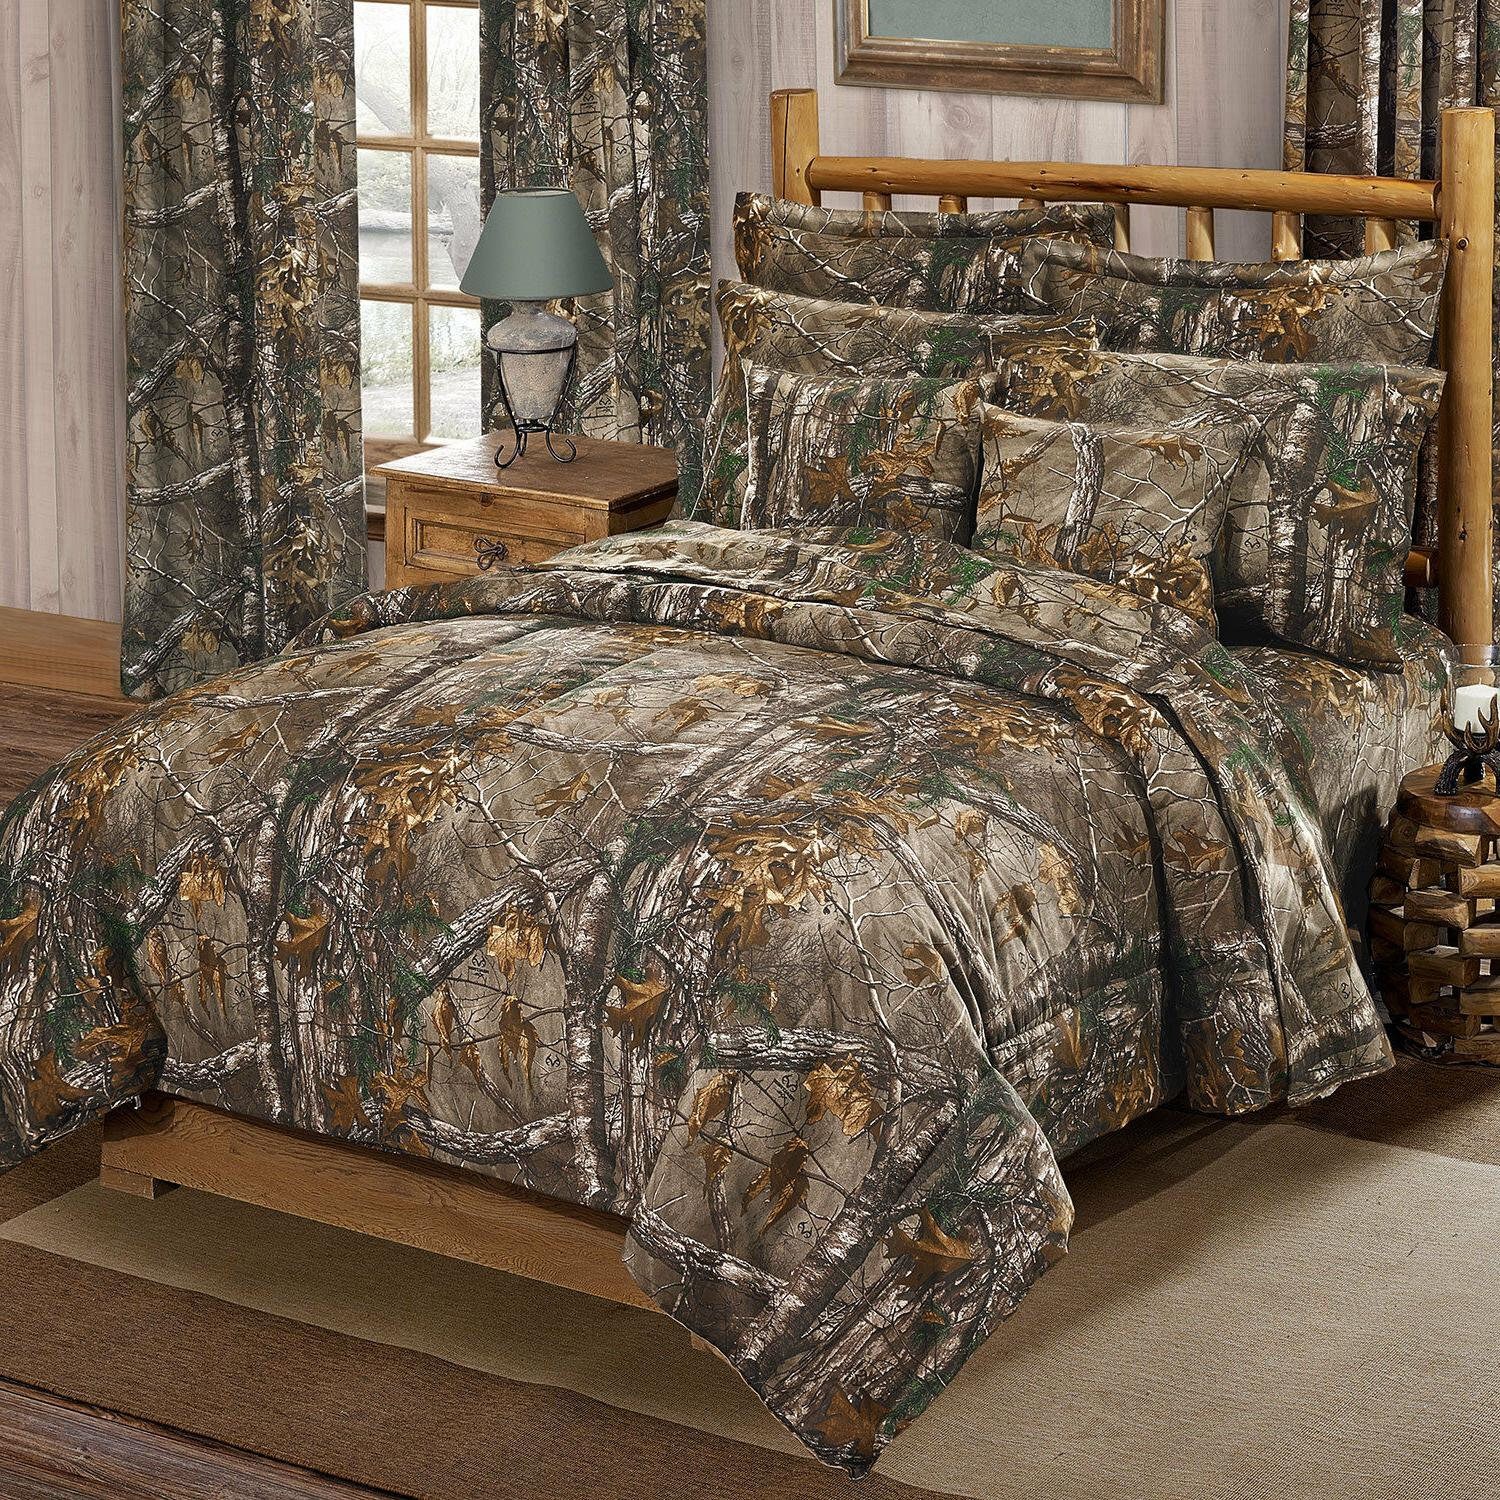 Realtree Xtra Queen Comforter Set w/sheets AP Camouflage 7pc